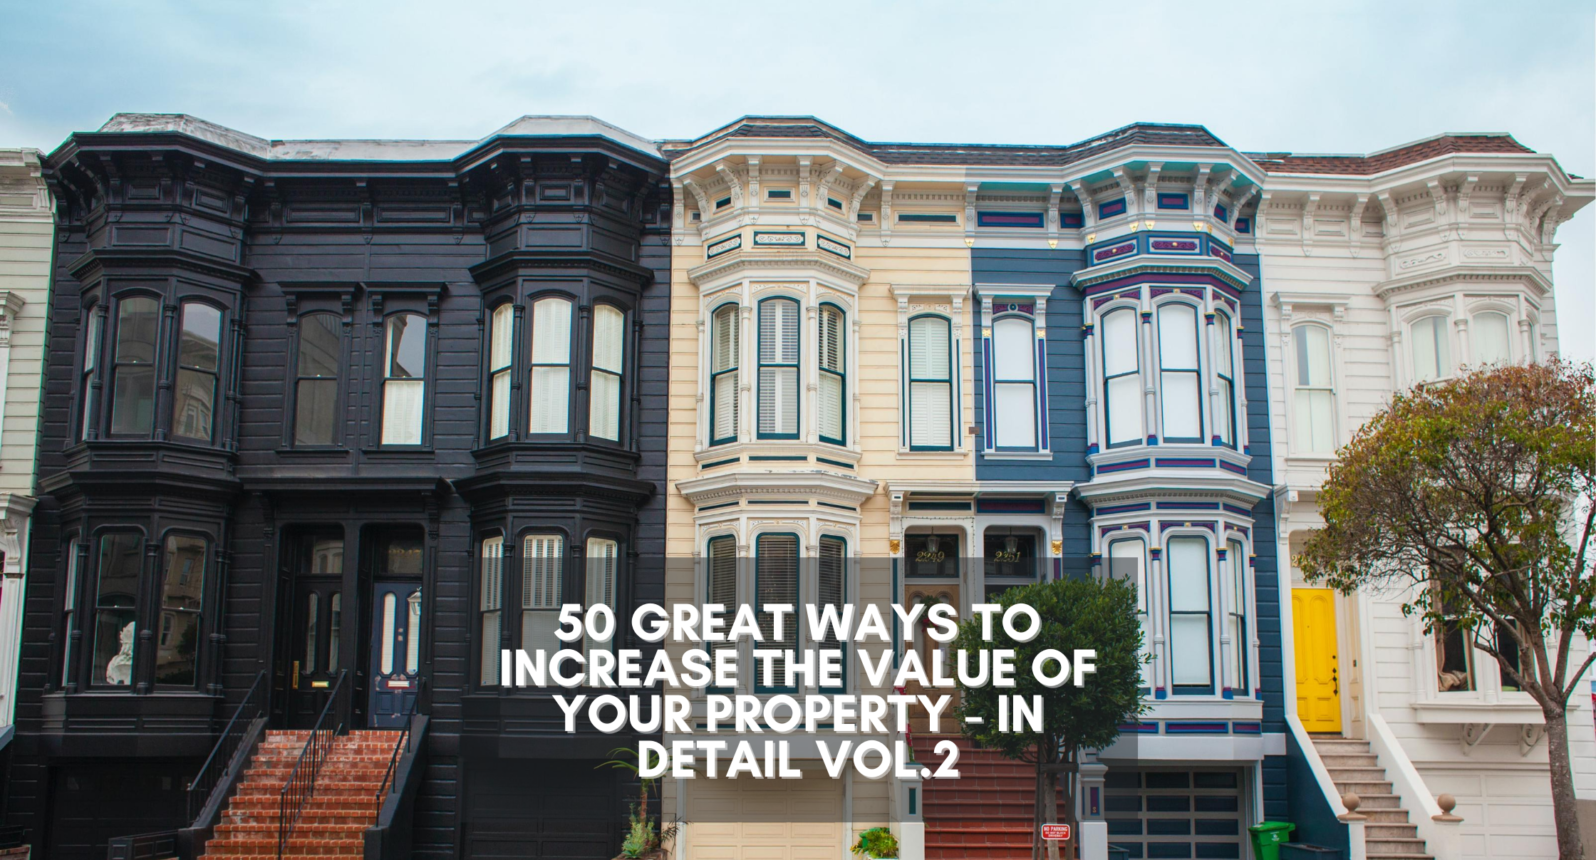 Blog cover image with multiple townhouses with copy 50 great ways to increase the value of your property